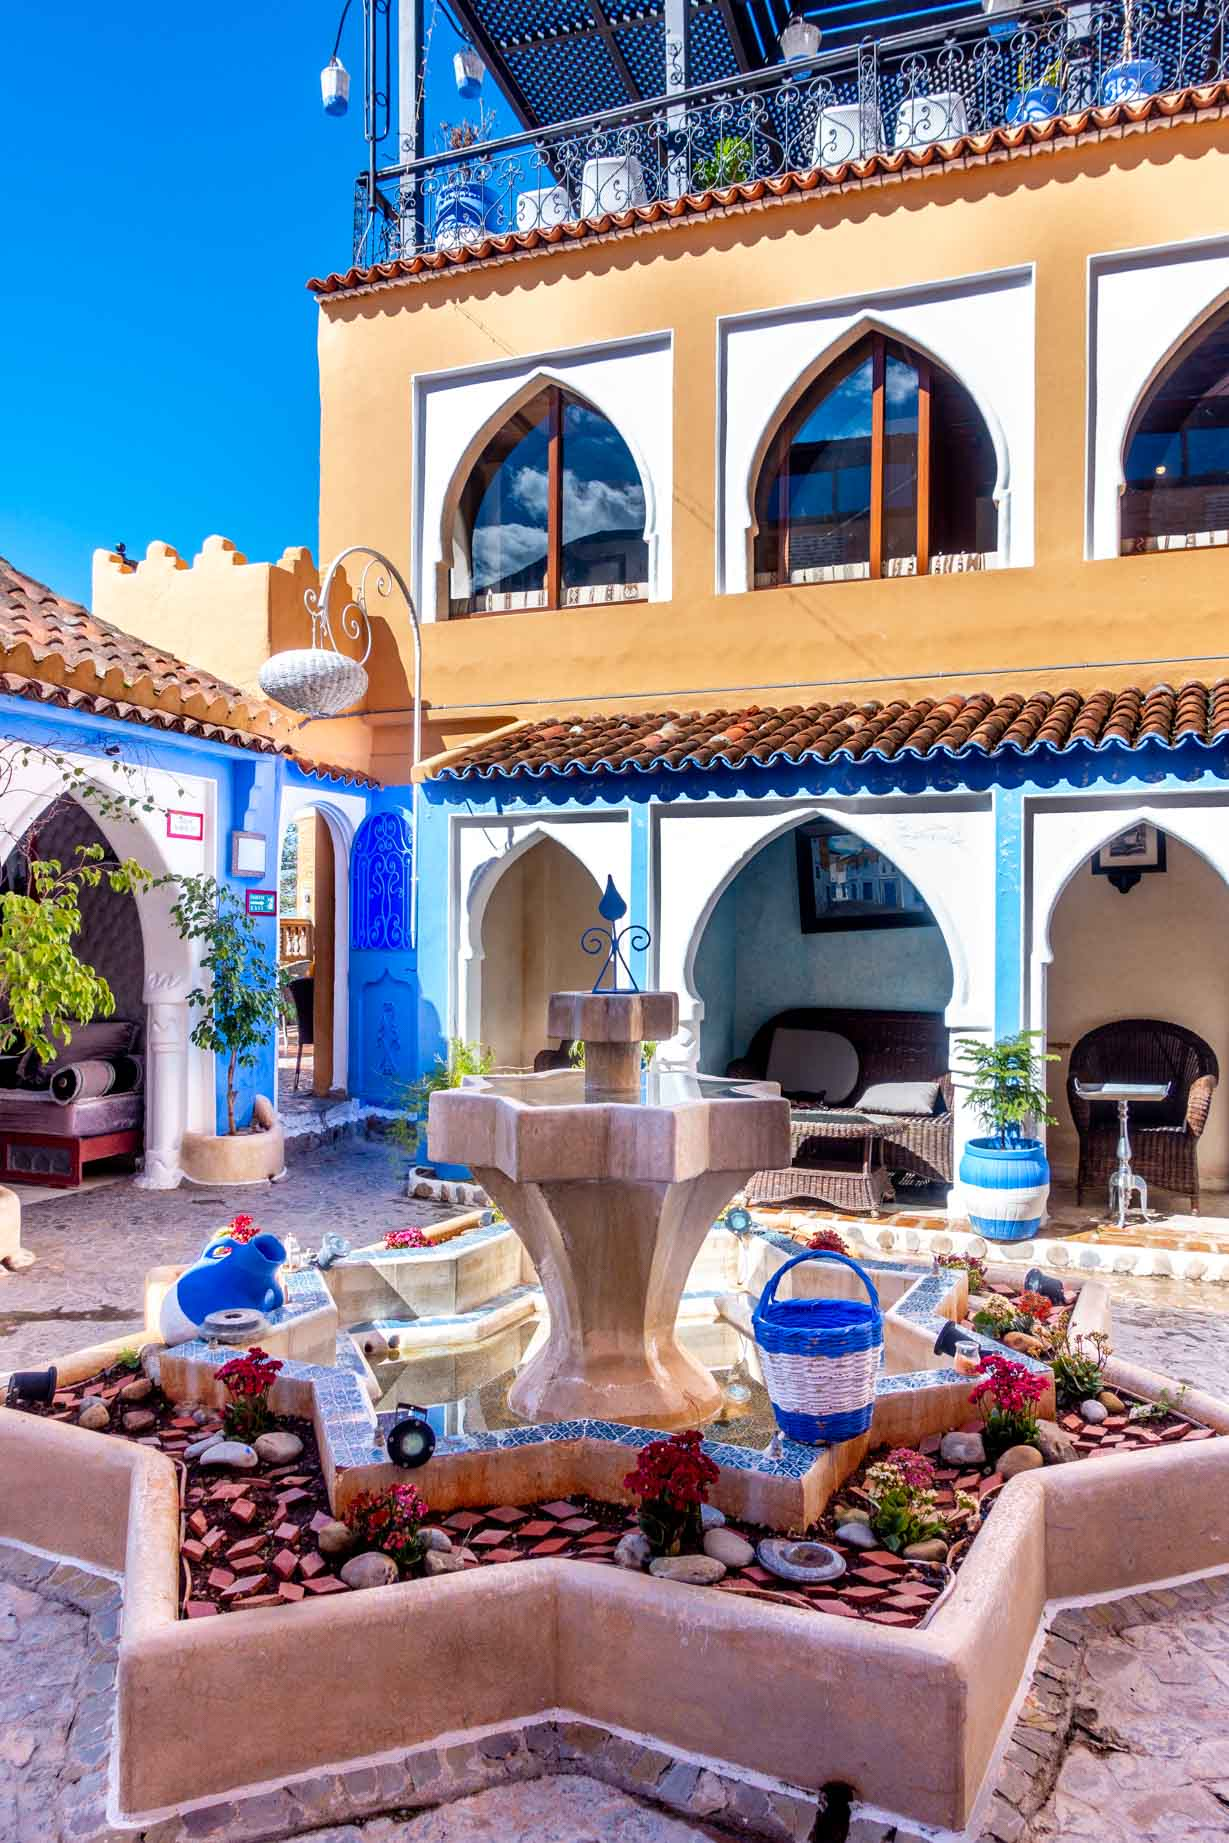 Star-shaped fountain in the courtyard of a riad